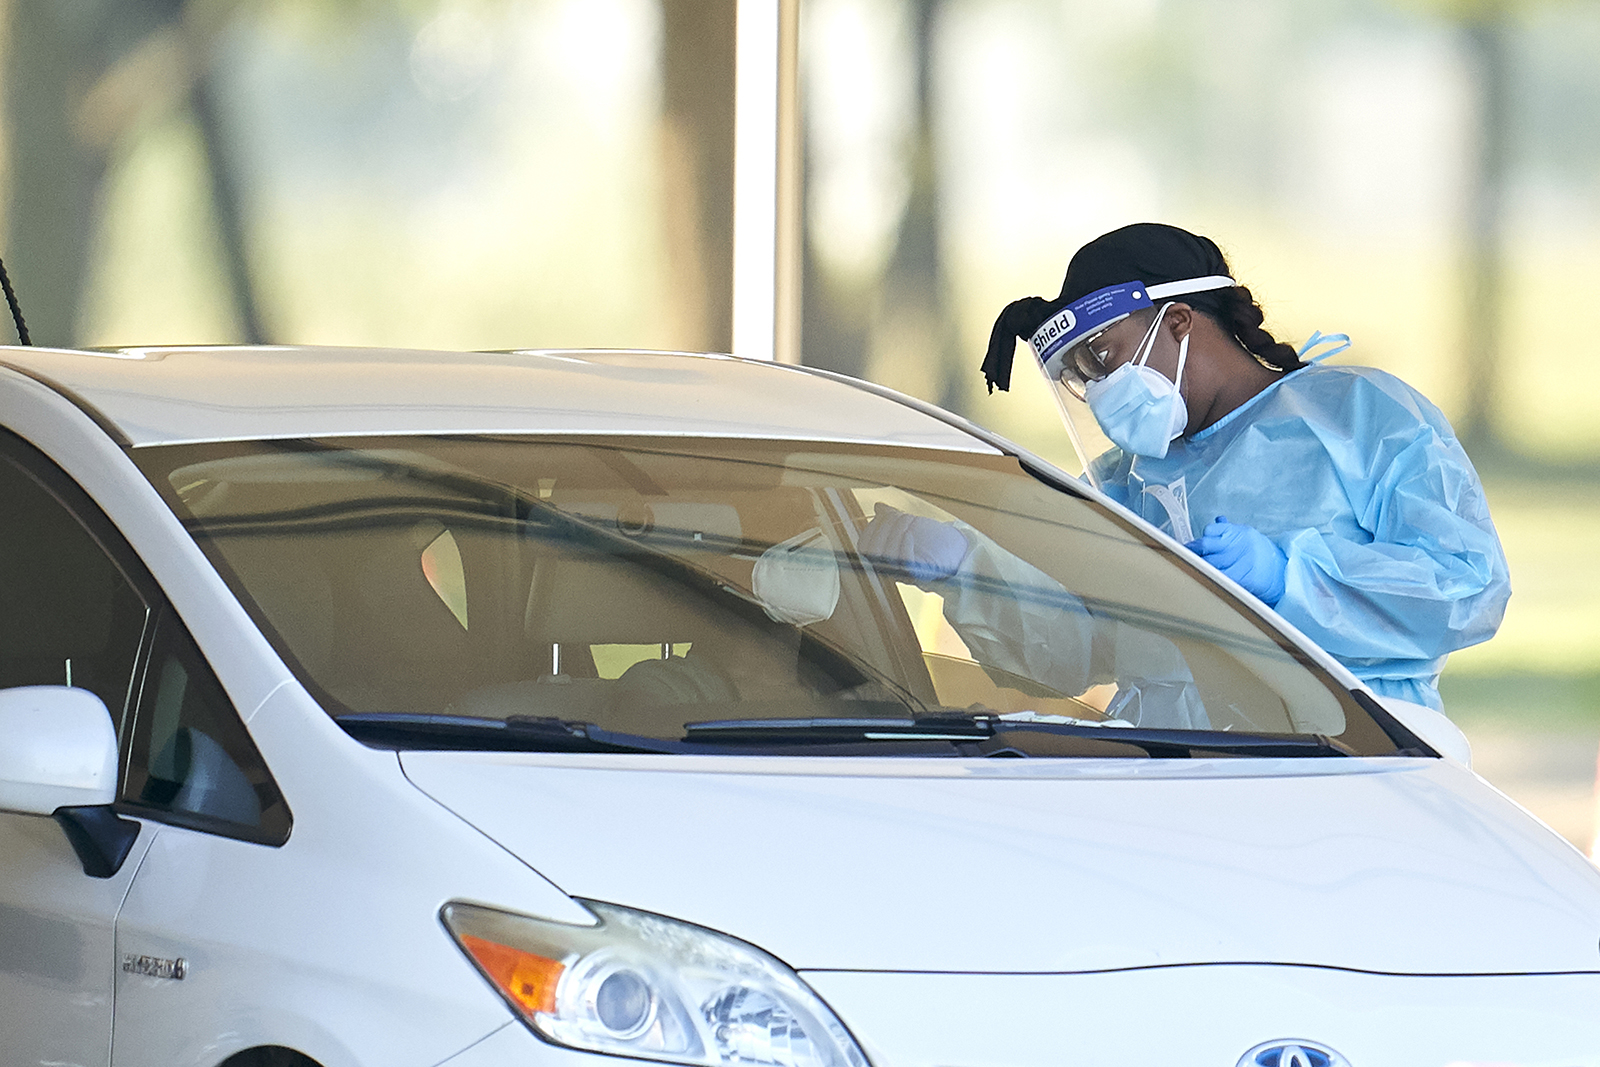 A healthcare worker performs a swab test on a person at a Covid-19 drive-through testing site in Mesquite, Texas, on Tuesday, August 18.